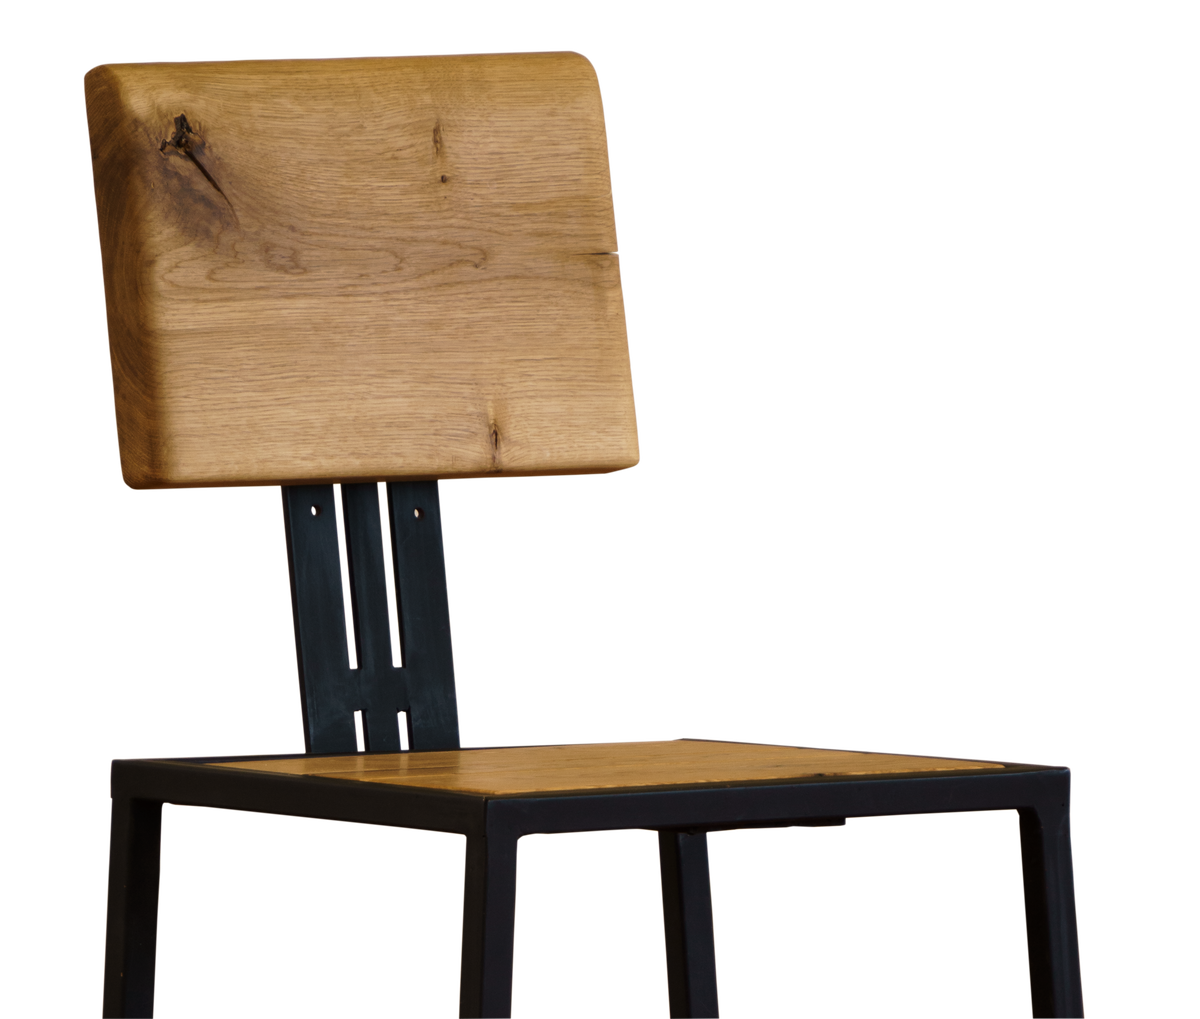 Arte Lignum - Handcrafted Furniture - Τηθύς